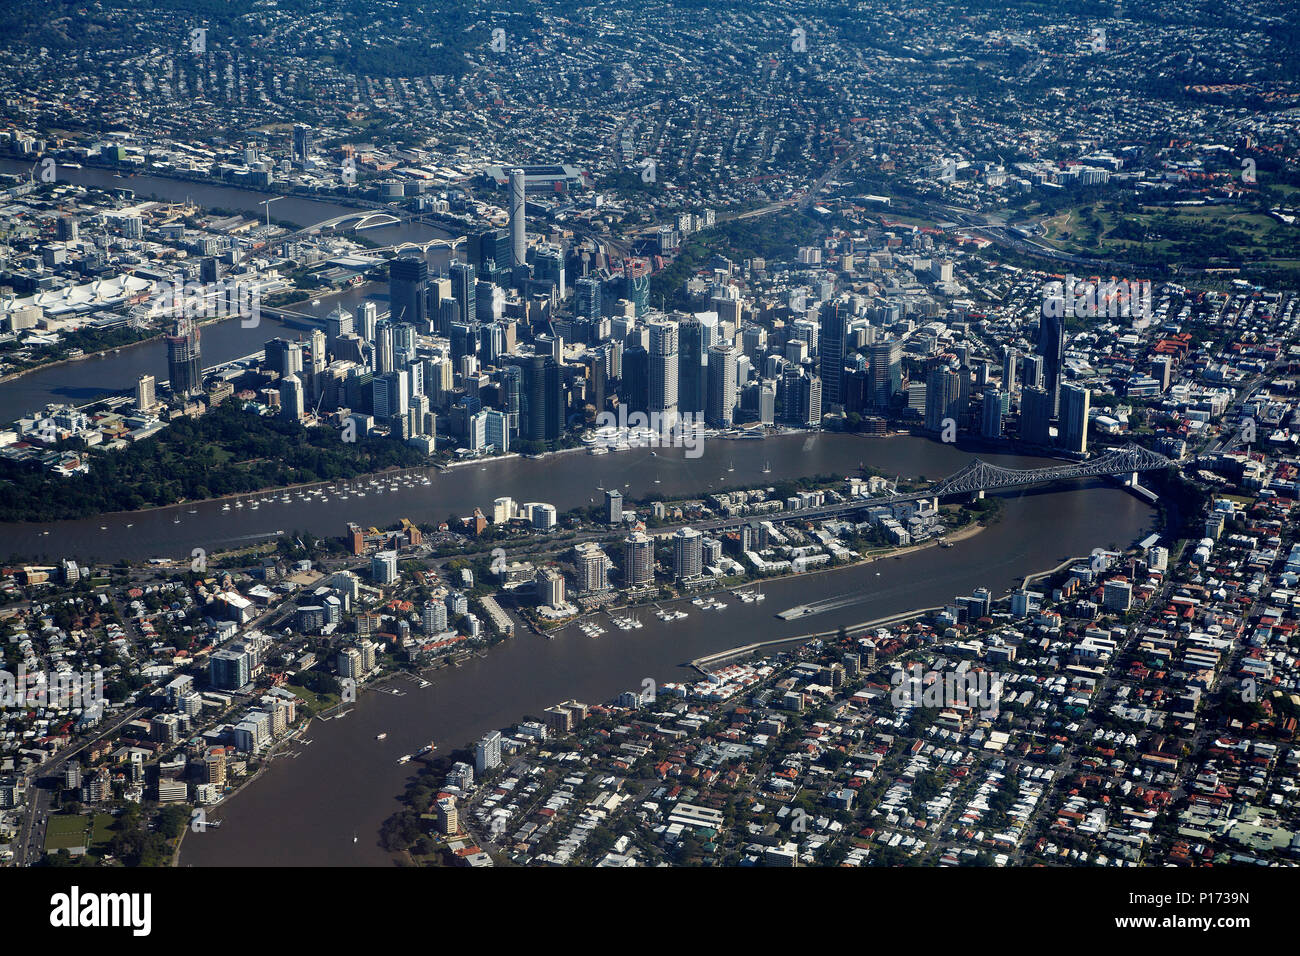 Brisbane River, Story Bridge, and Brisbane CBD, Queensland, Australia - aerial - Stock Image